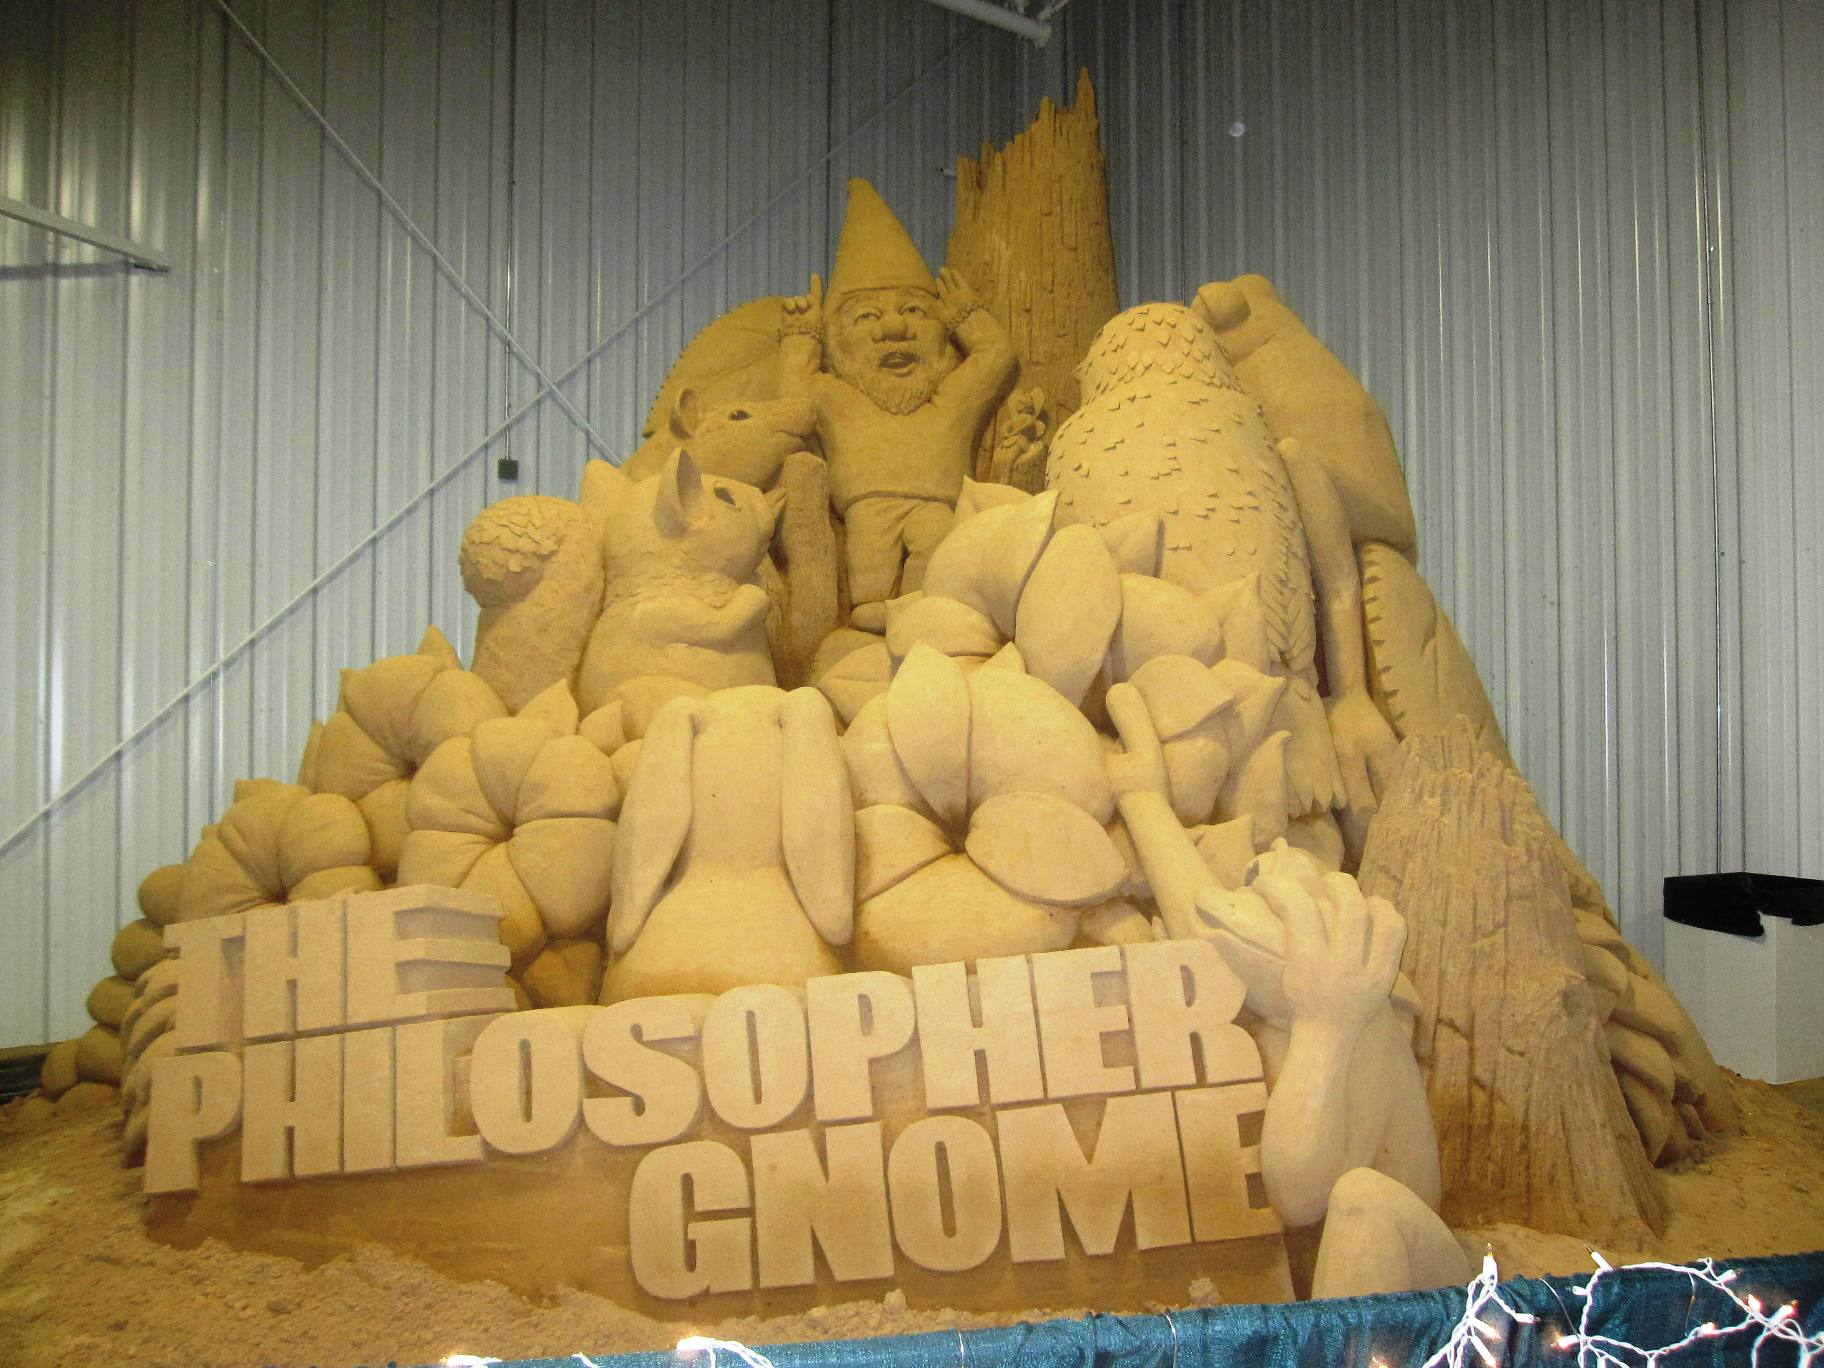 Philosopher Gnome Sand Sculpture Columbia